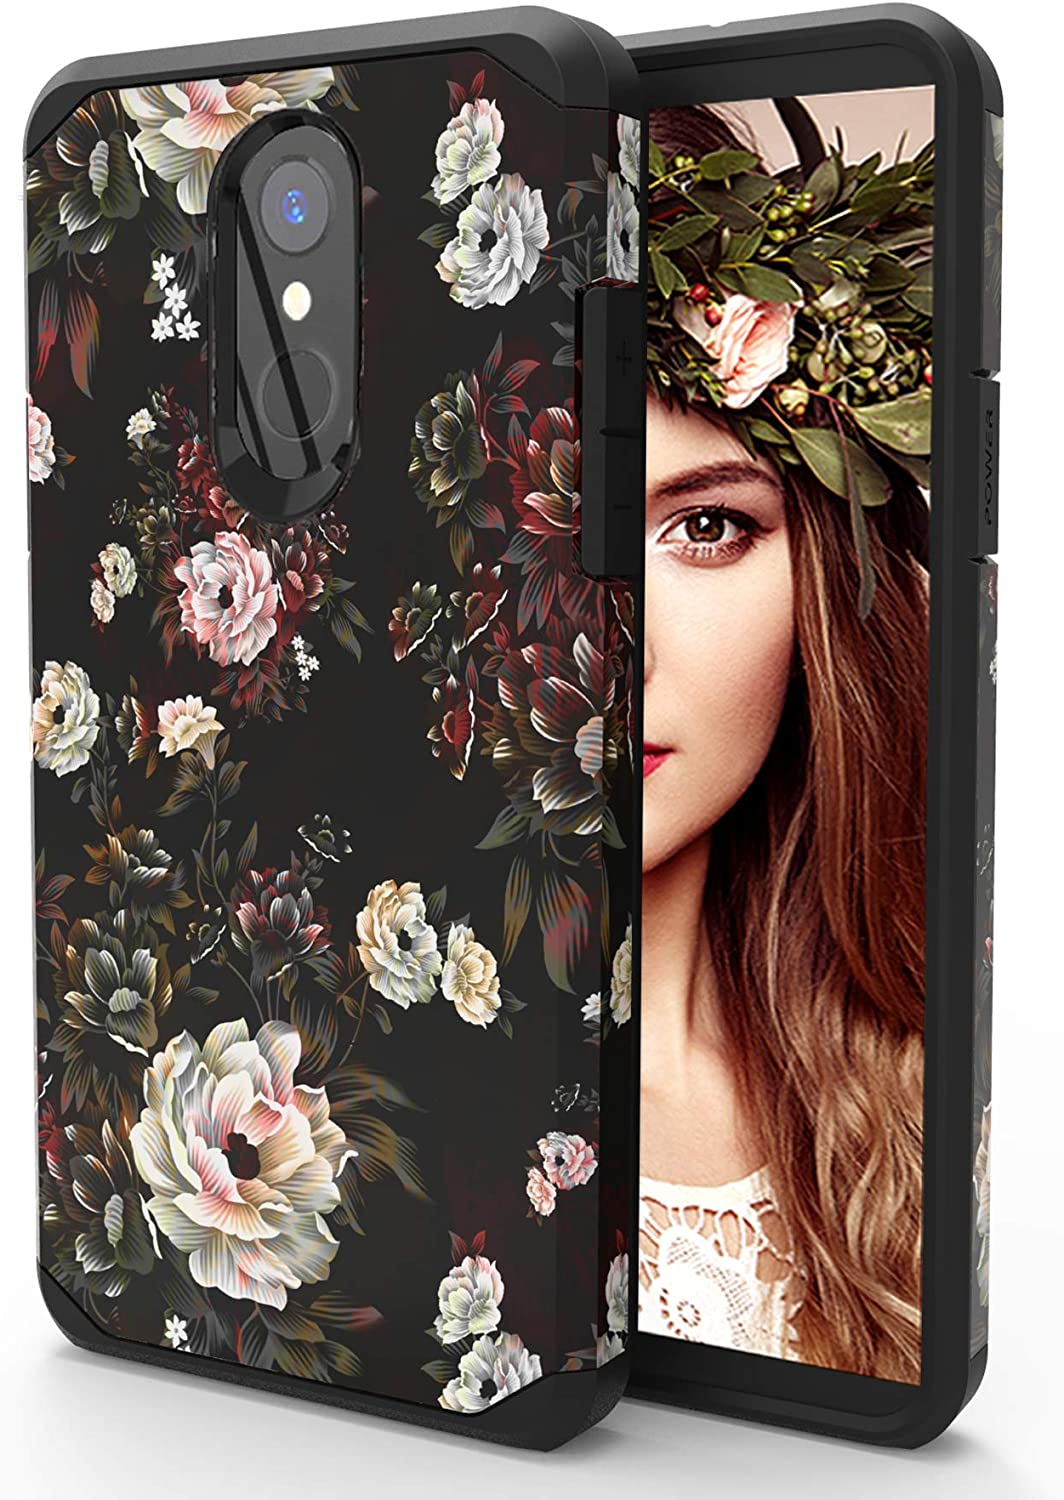 LG Stylo 4 Phone Case,LG Stylo 4 Plus,LG Q Stylus, LG Stylo 4 Case with Tempered Glass Screen Protector,PC+TPU Dual Layer Anti-Scratch Hybrid Shockproof Drop Protective Case for Women,Girls (Floral)